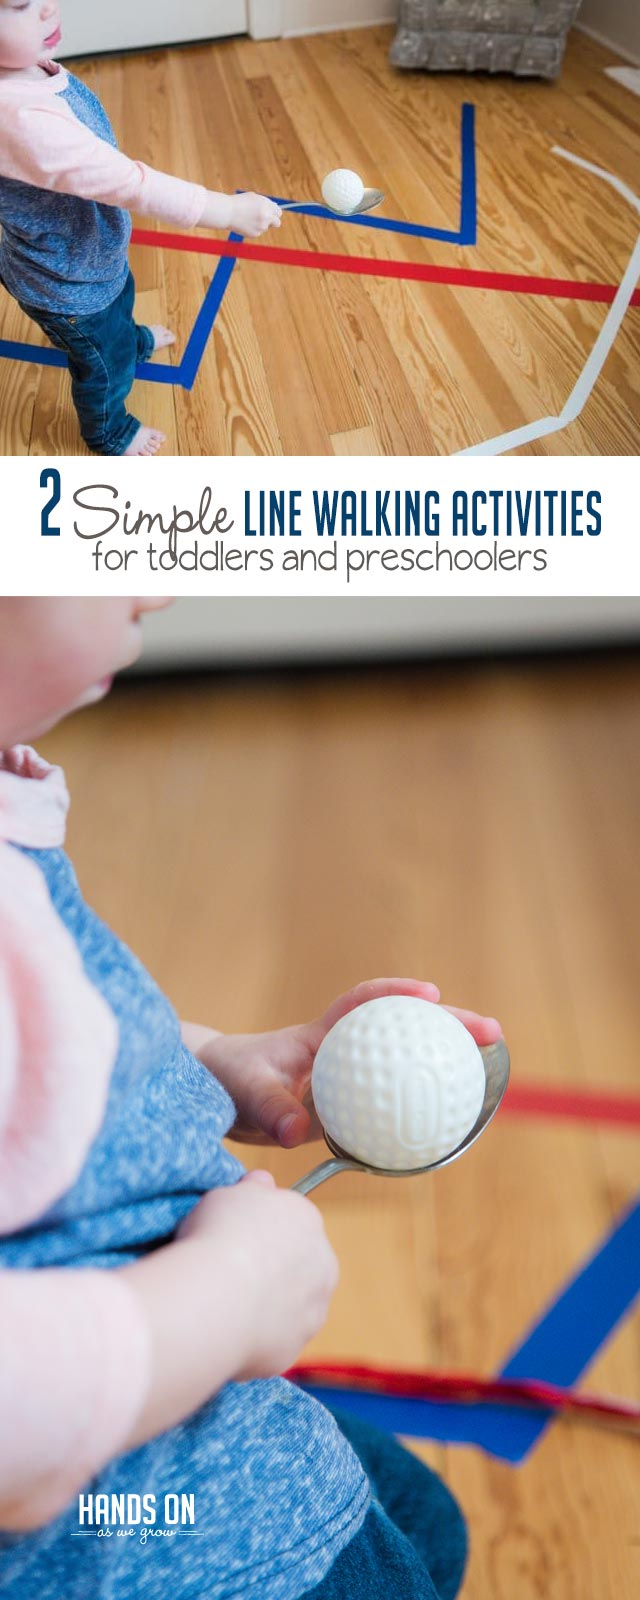 Two simple line walking activities for preschoolers and toddlers that will help practice balance and coordination! Easy set-up and directions!